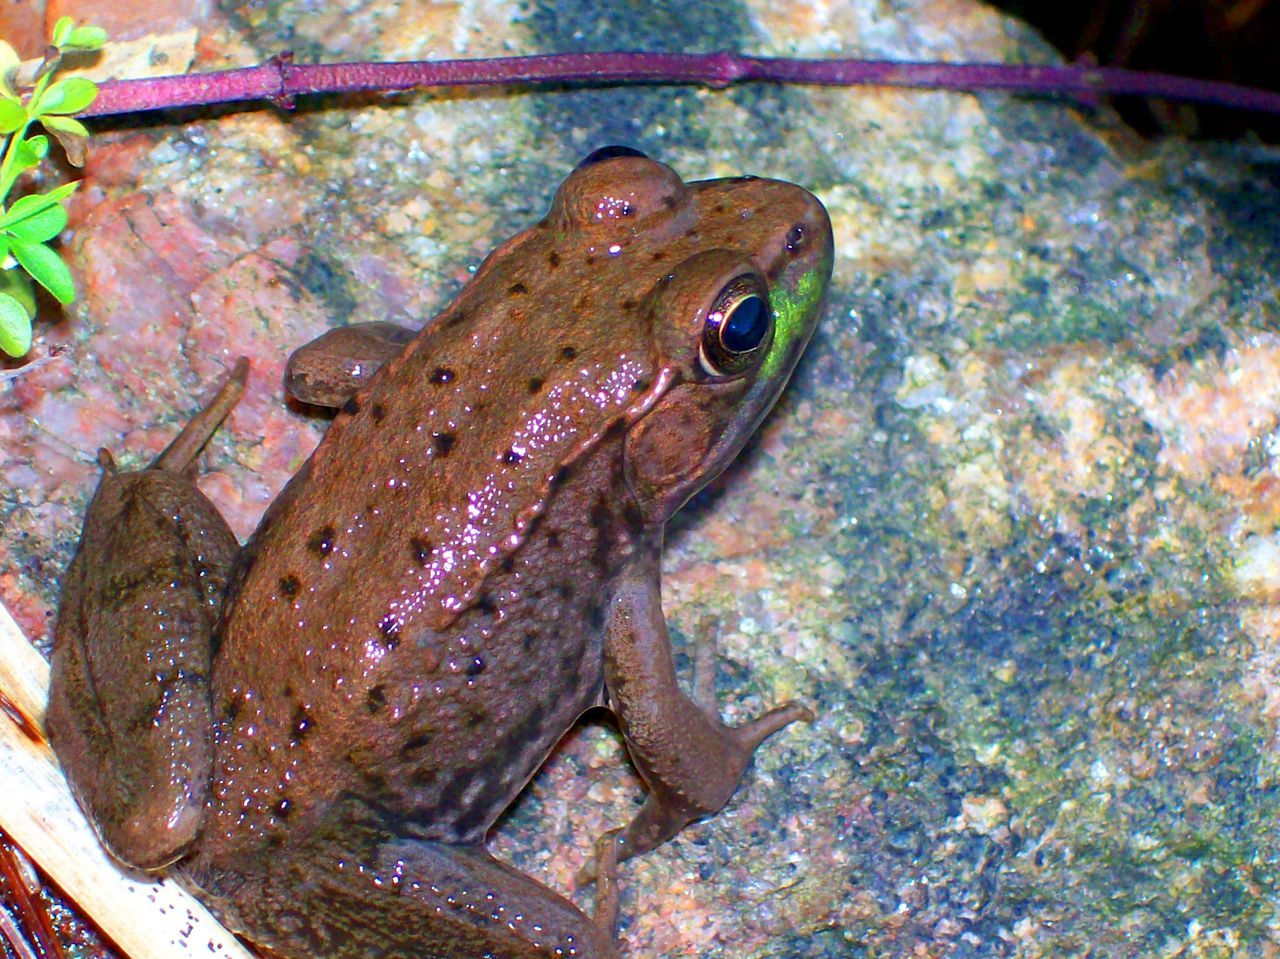 Amphibian Animal Themes Animal Wildlife Animals In The Wild Brown Frog Close-up Day Frog Frog Life Frog Pond Nature No People One Animal Outdoors